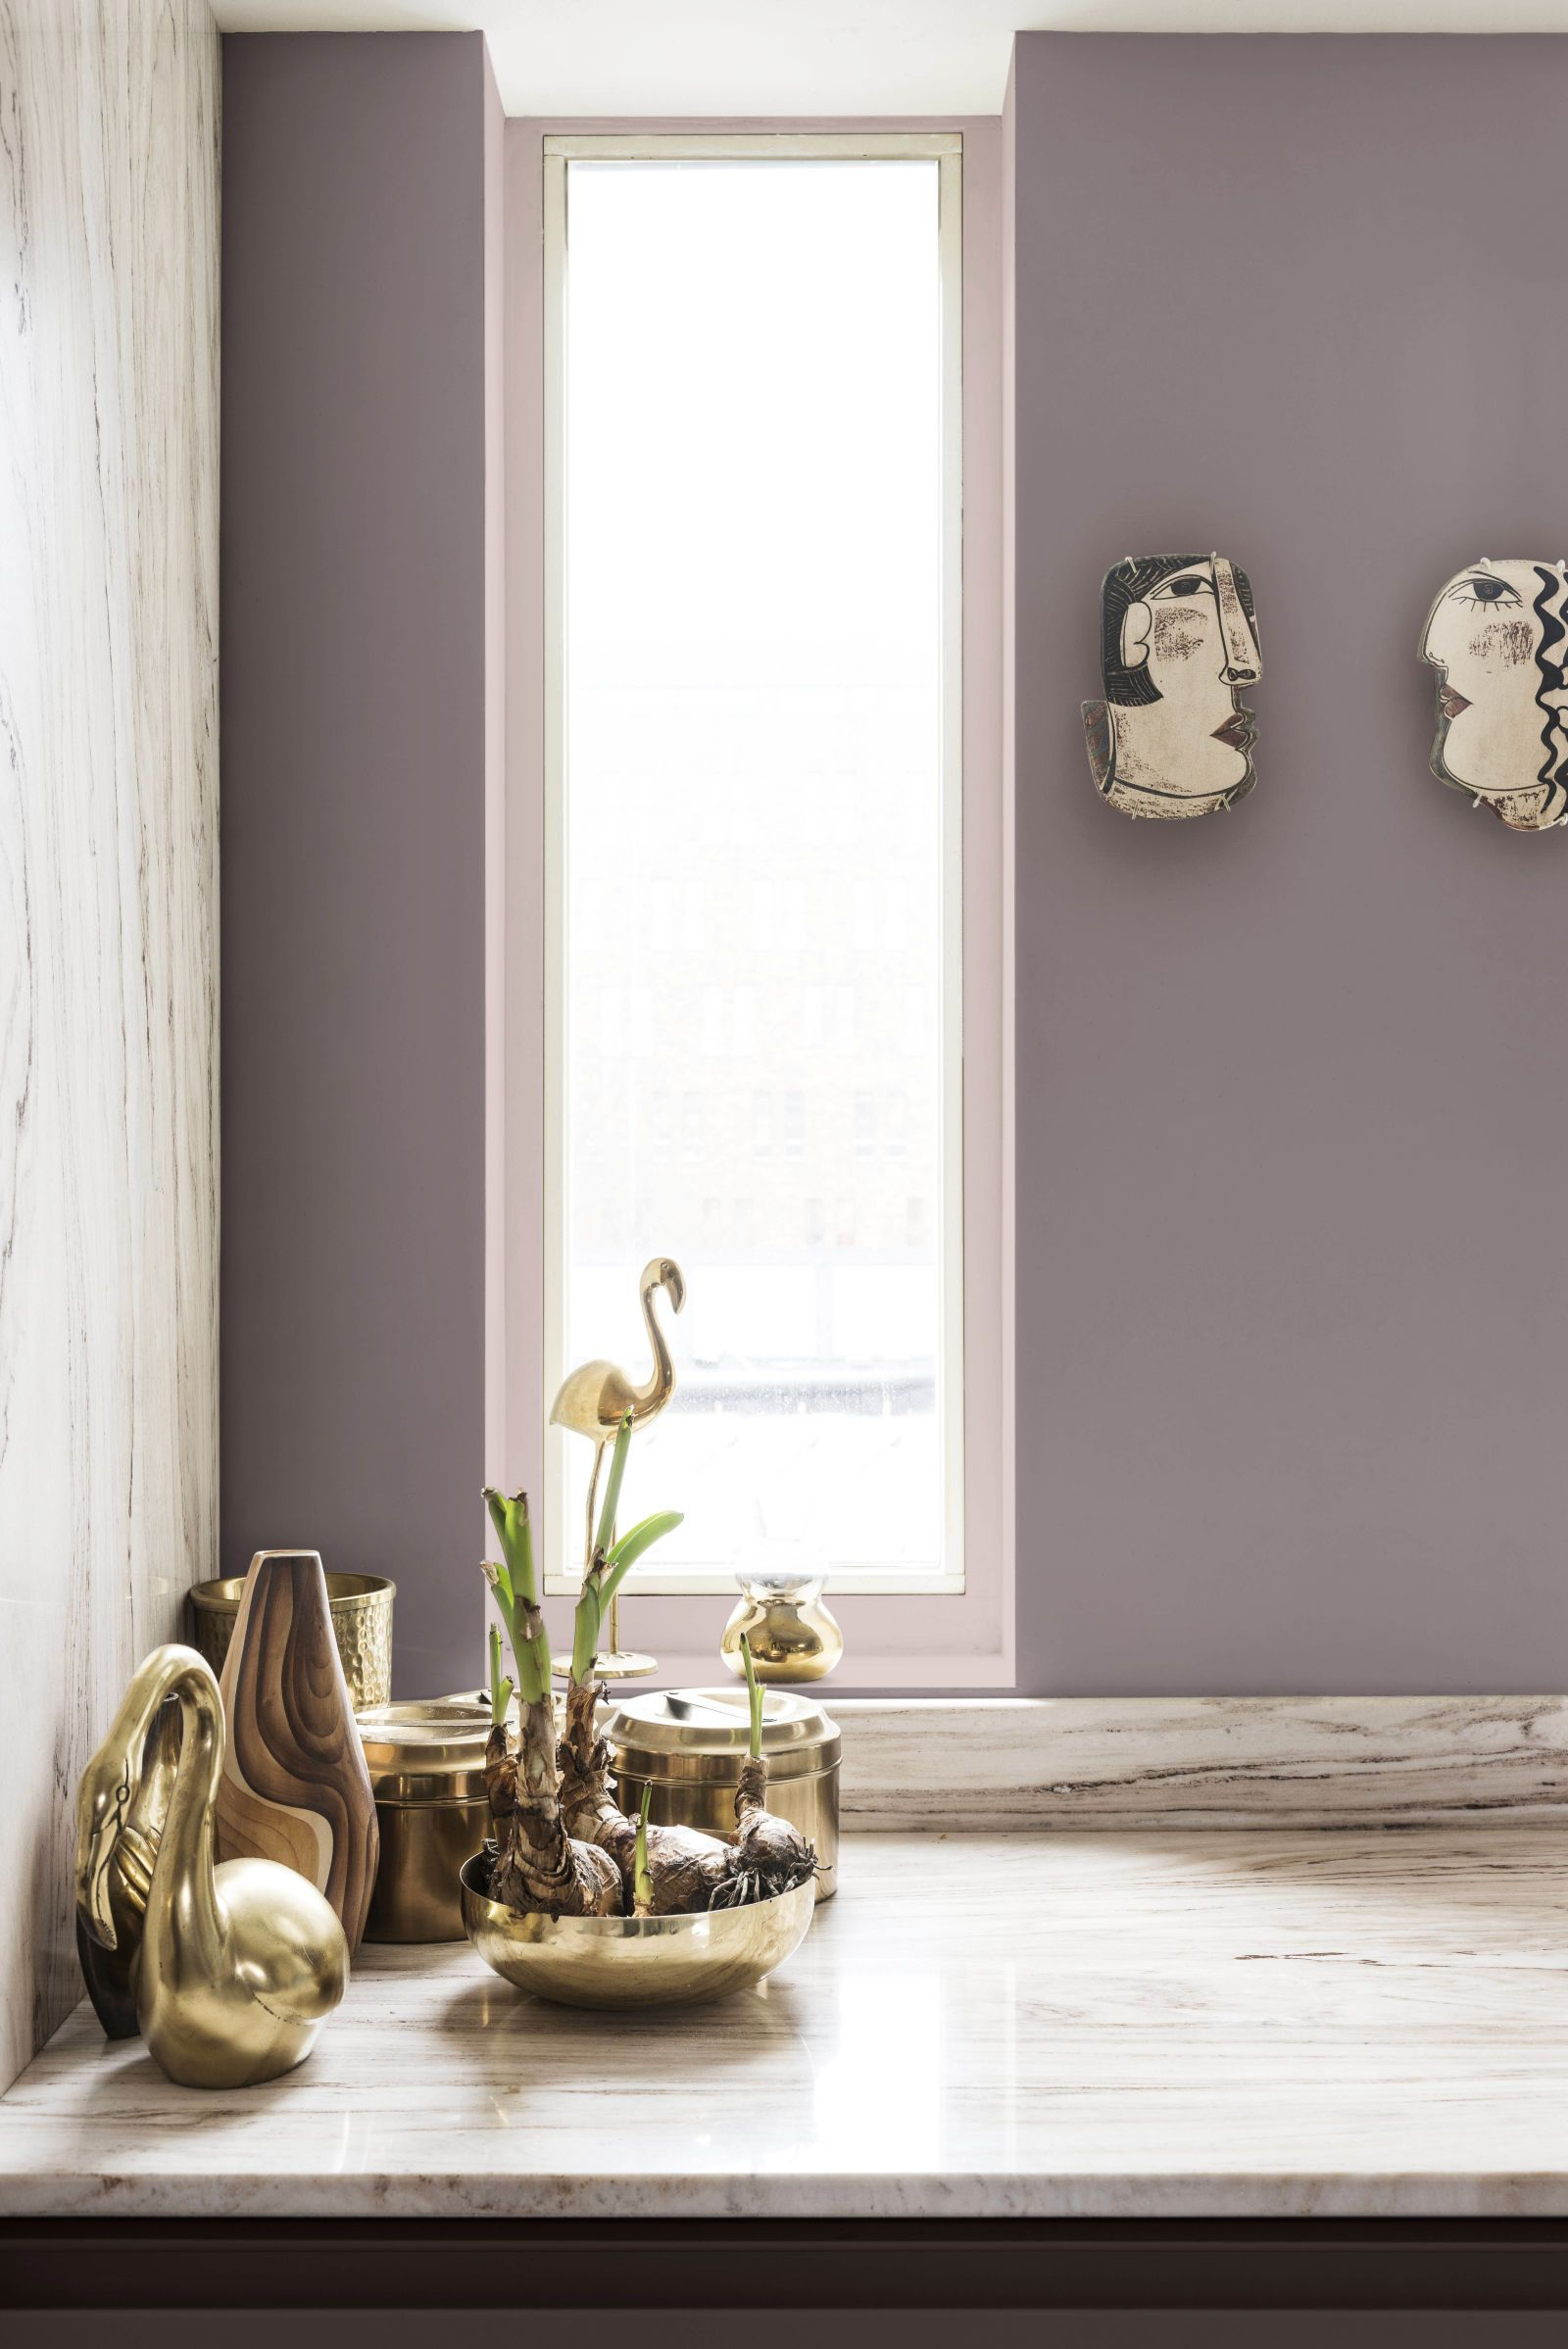 Peachy Dulux Announce Its Colour Of The Year 2018 House Dulux Home Interior And Landscaping Ologienasavecom